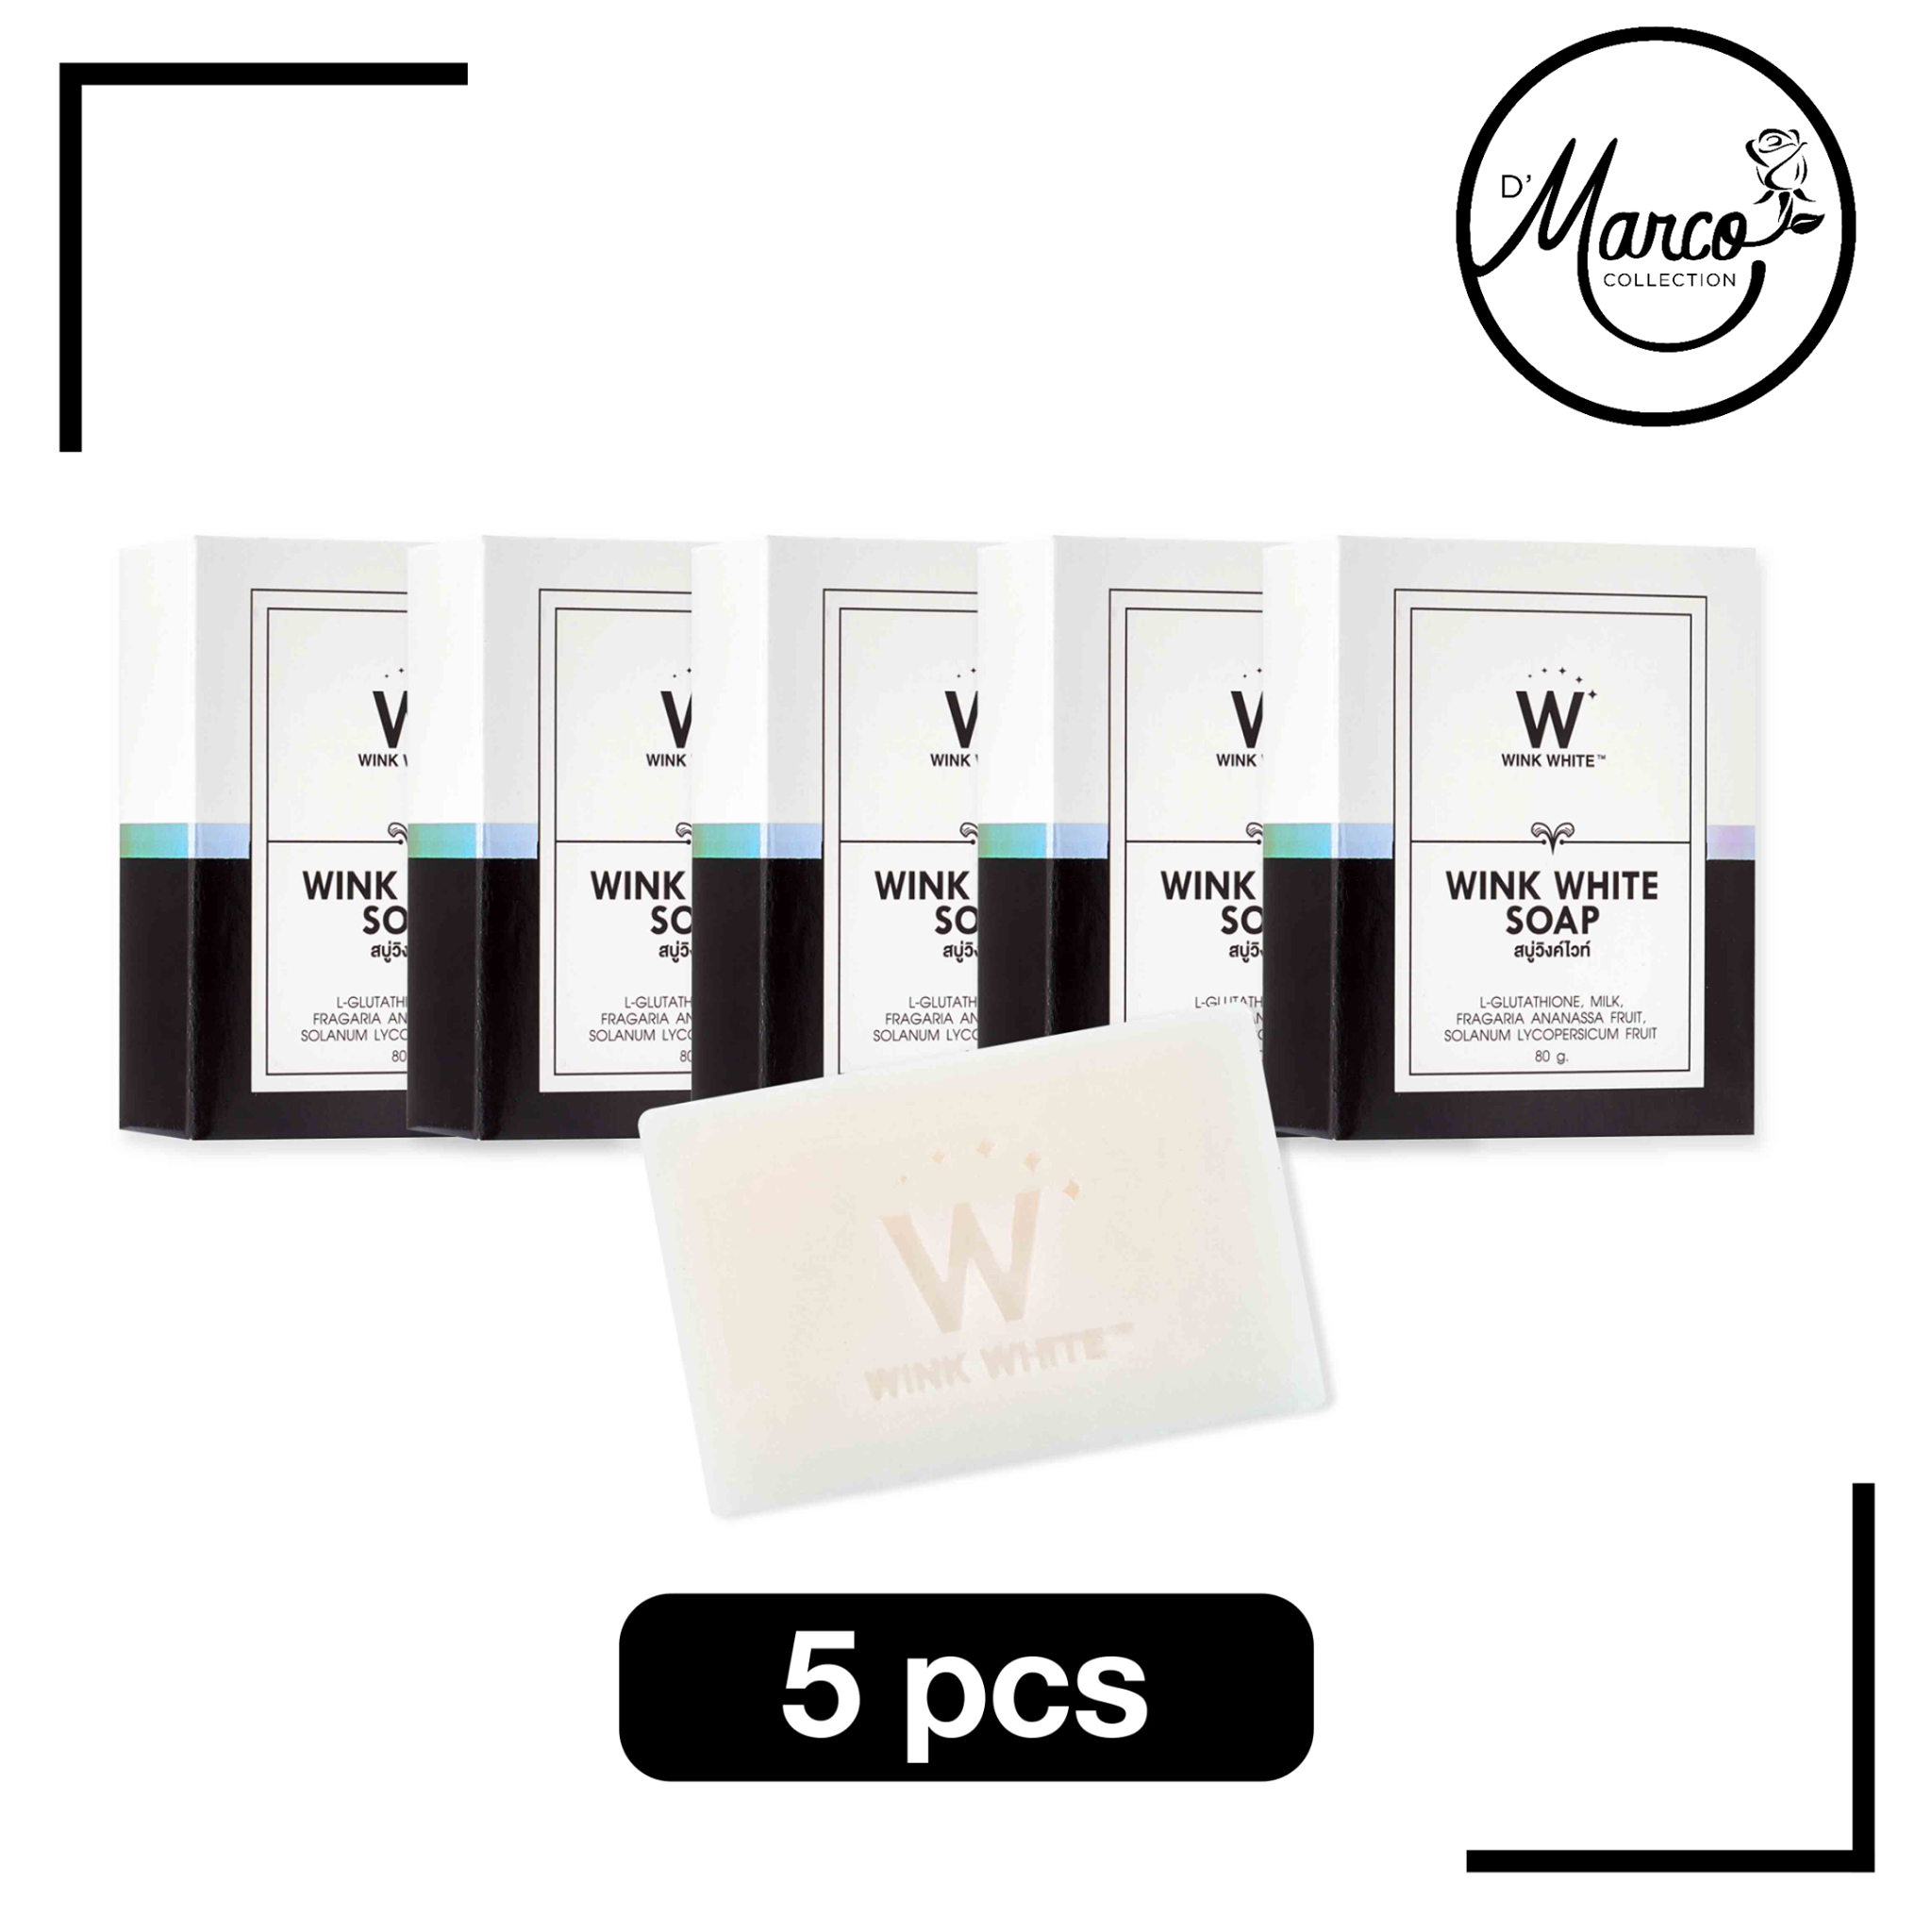 Wink White Soap, 5 bars